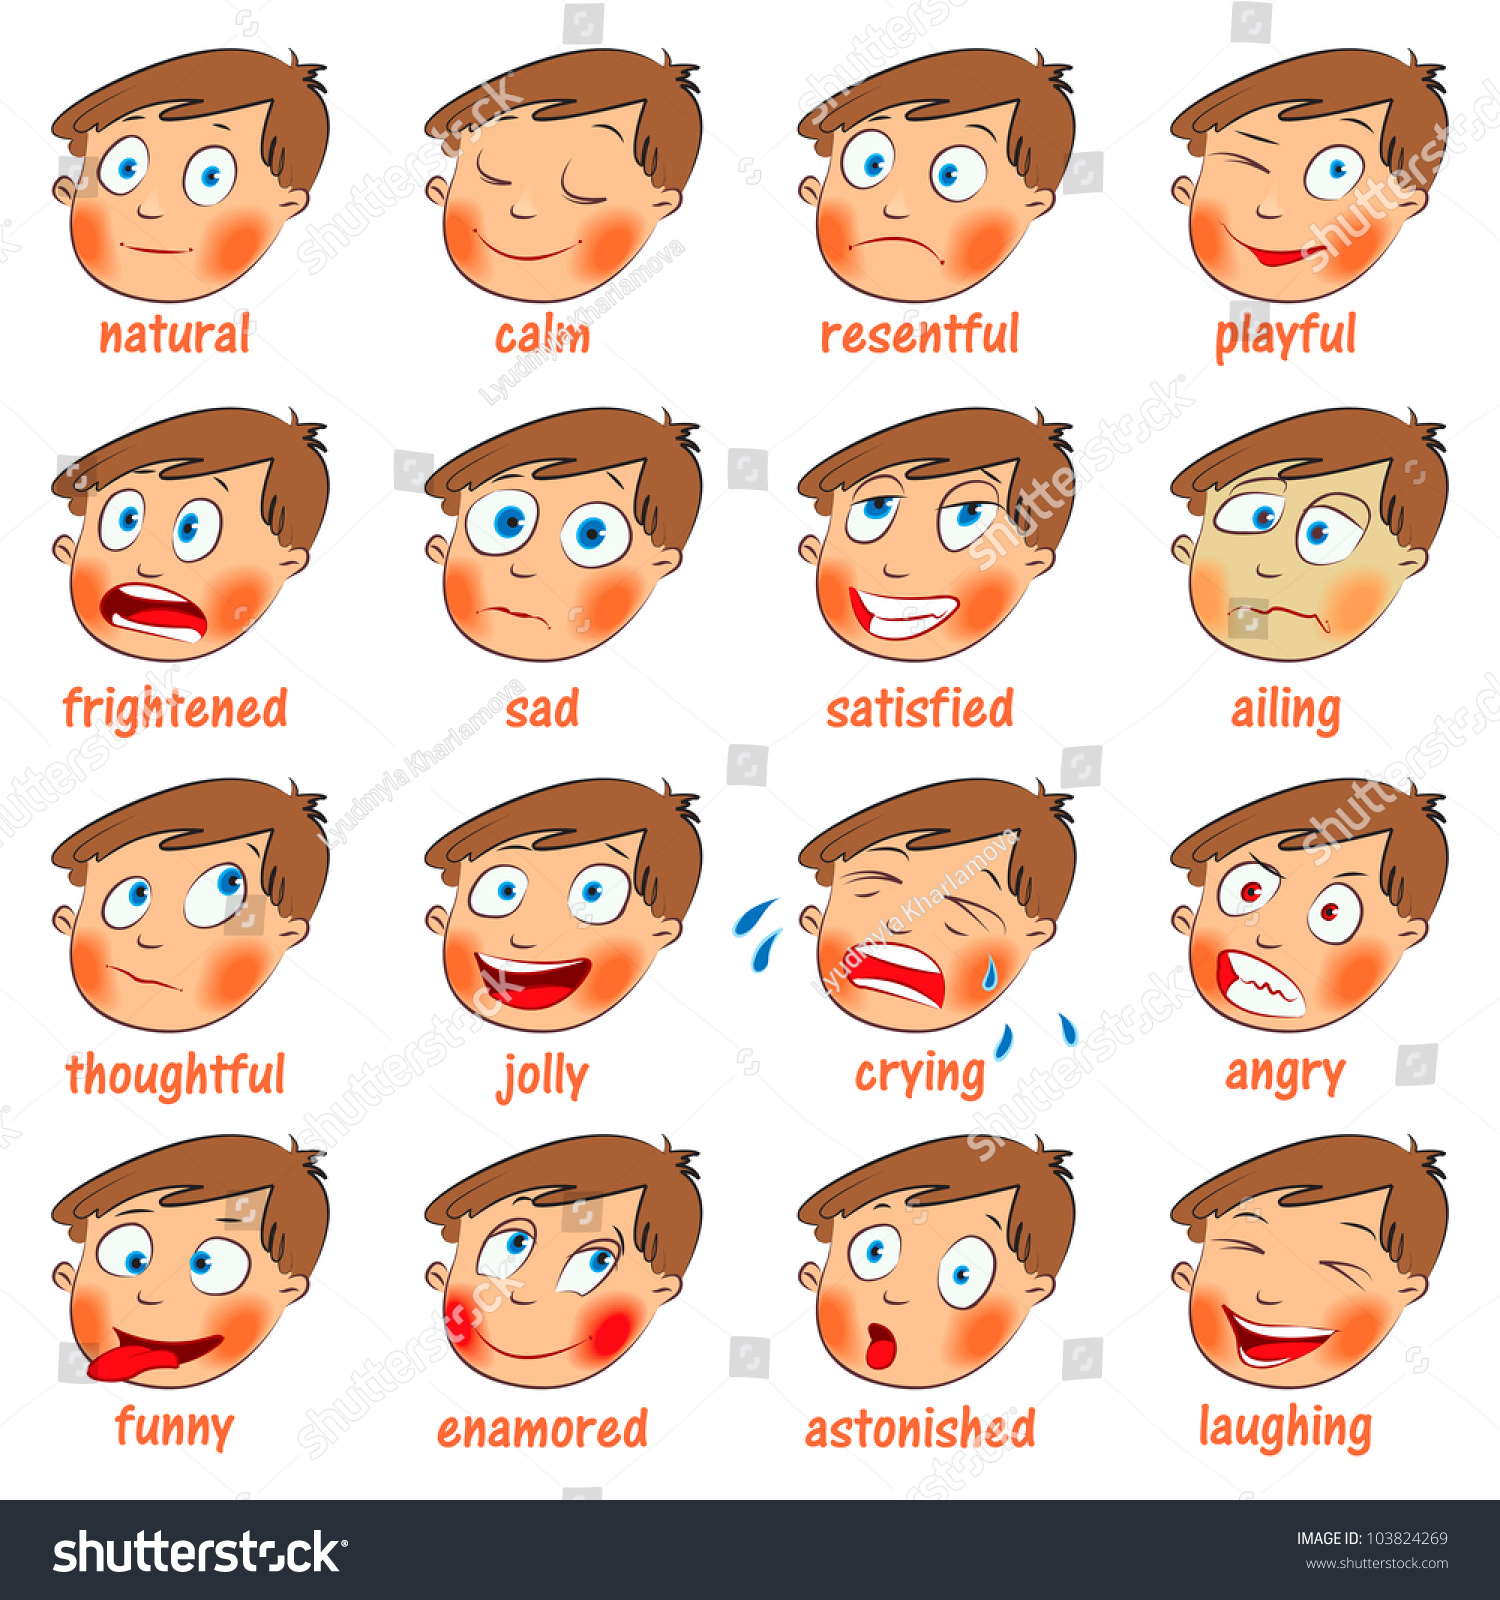 Emotions Cartoon Facial Expressions Set Natural Stock